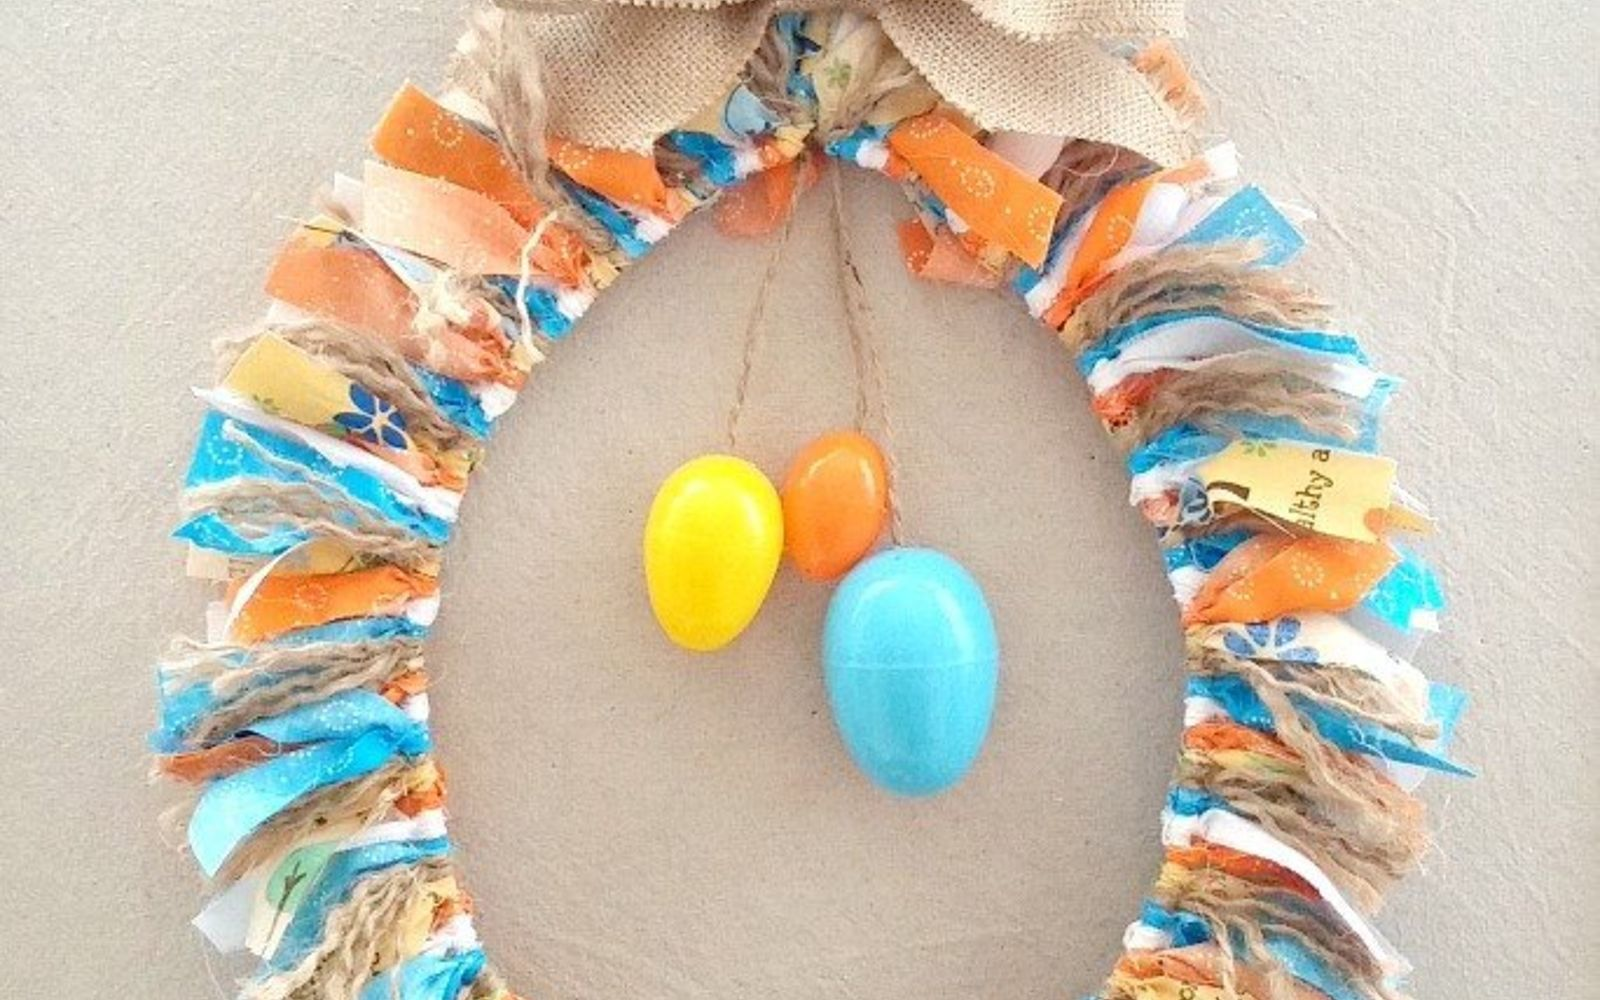 s 31 gorgeous spring wreaths that will make your neighbors smile, crafts, seasonal holiday decor, wreaths, Tie fabric scraps along a hanger